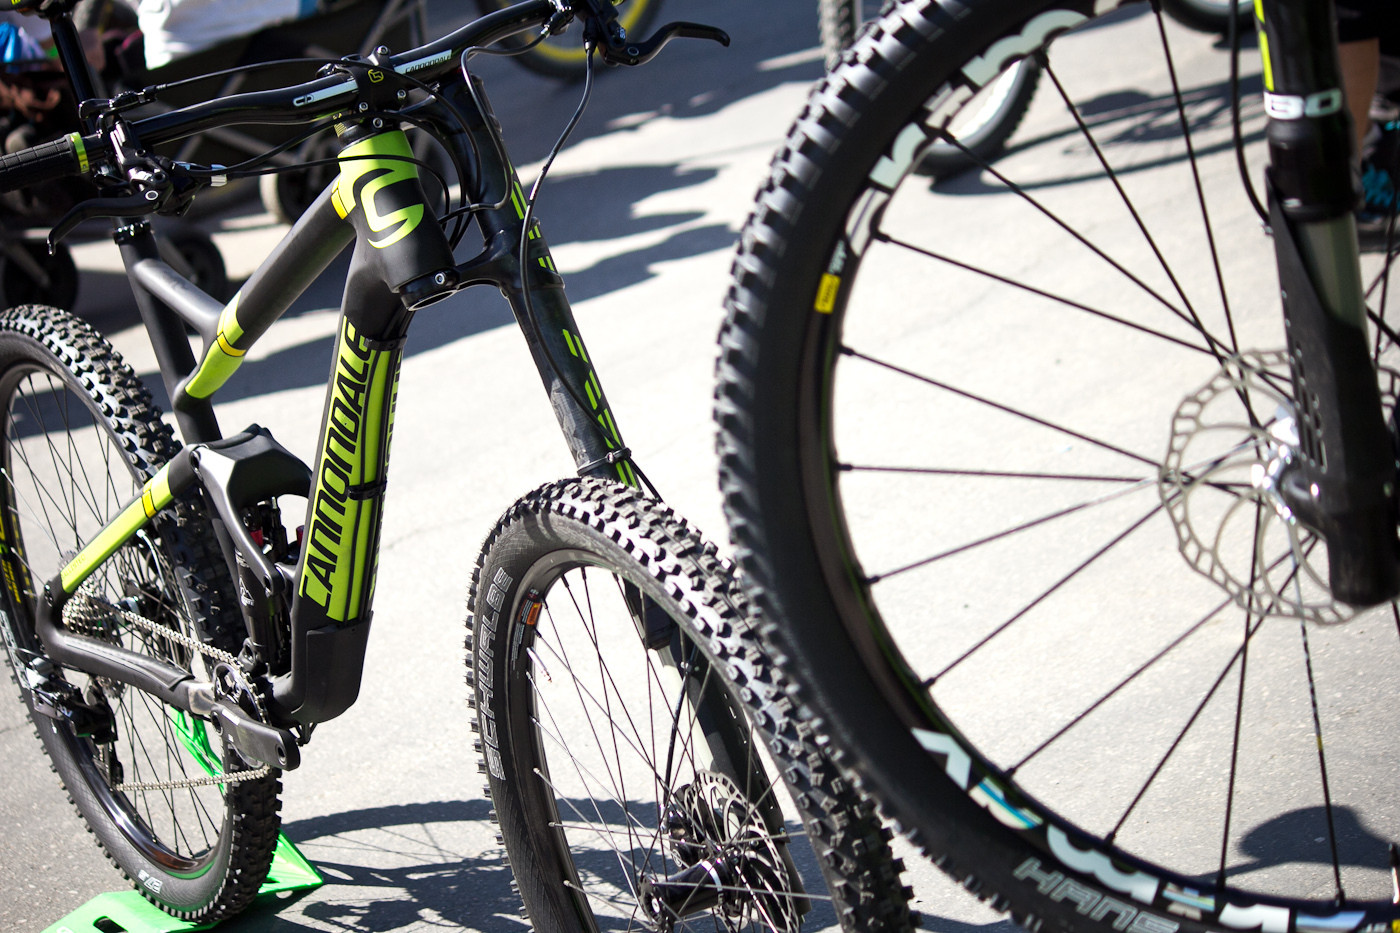 2015 Cannondale Jekyll 27.5 - Sea Otter Classic - 2014 Sea Otter Classic Pit Bits - Final Edition - Mountain Biking Pictures - Vital MTB